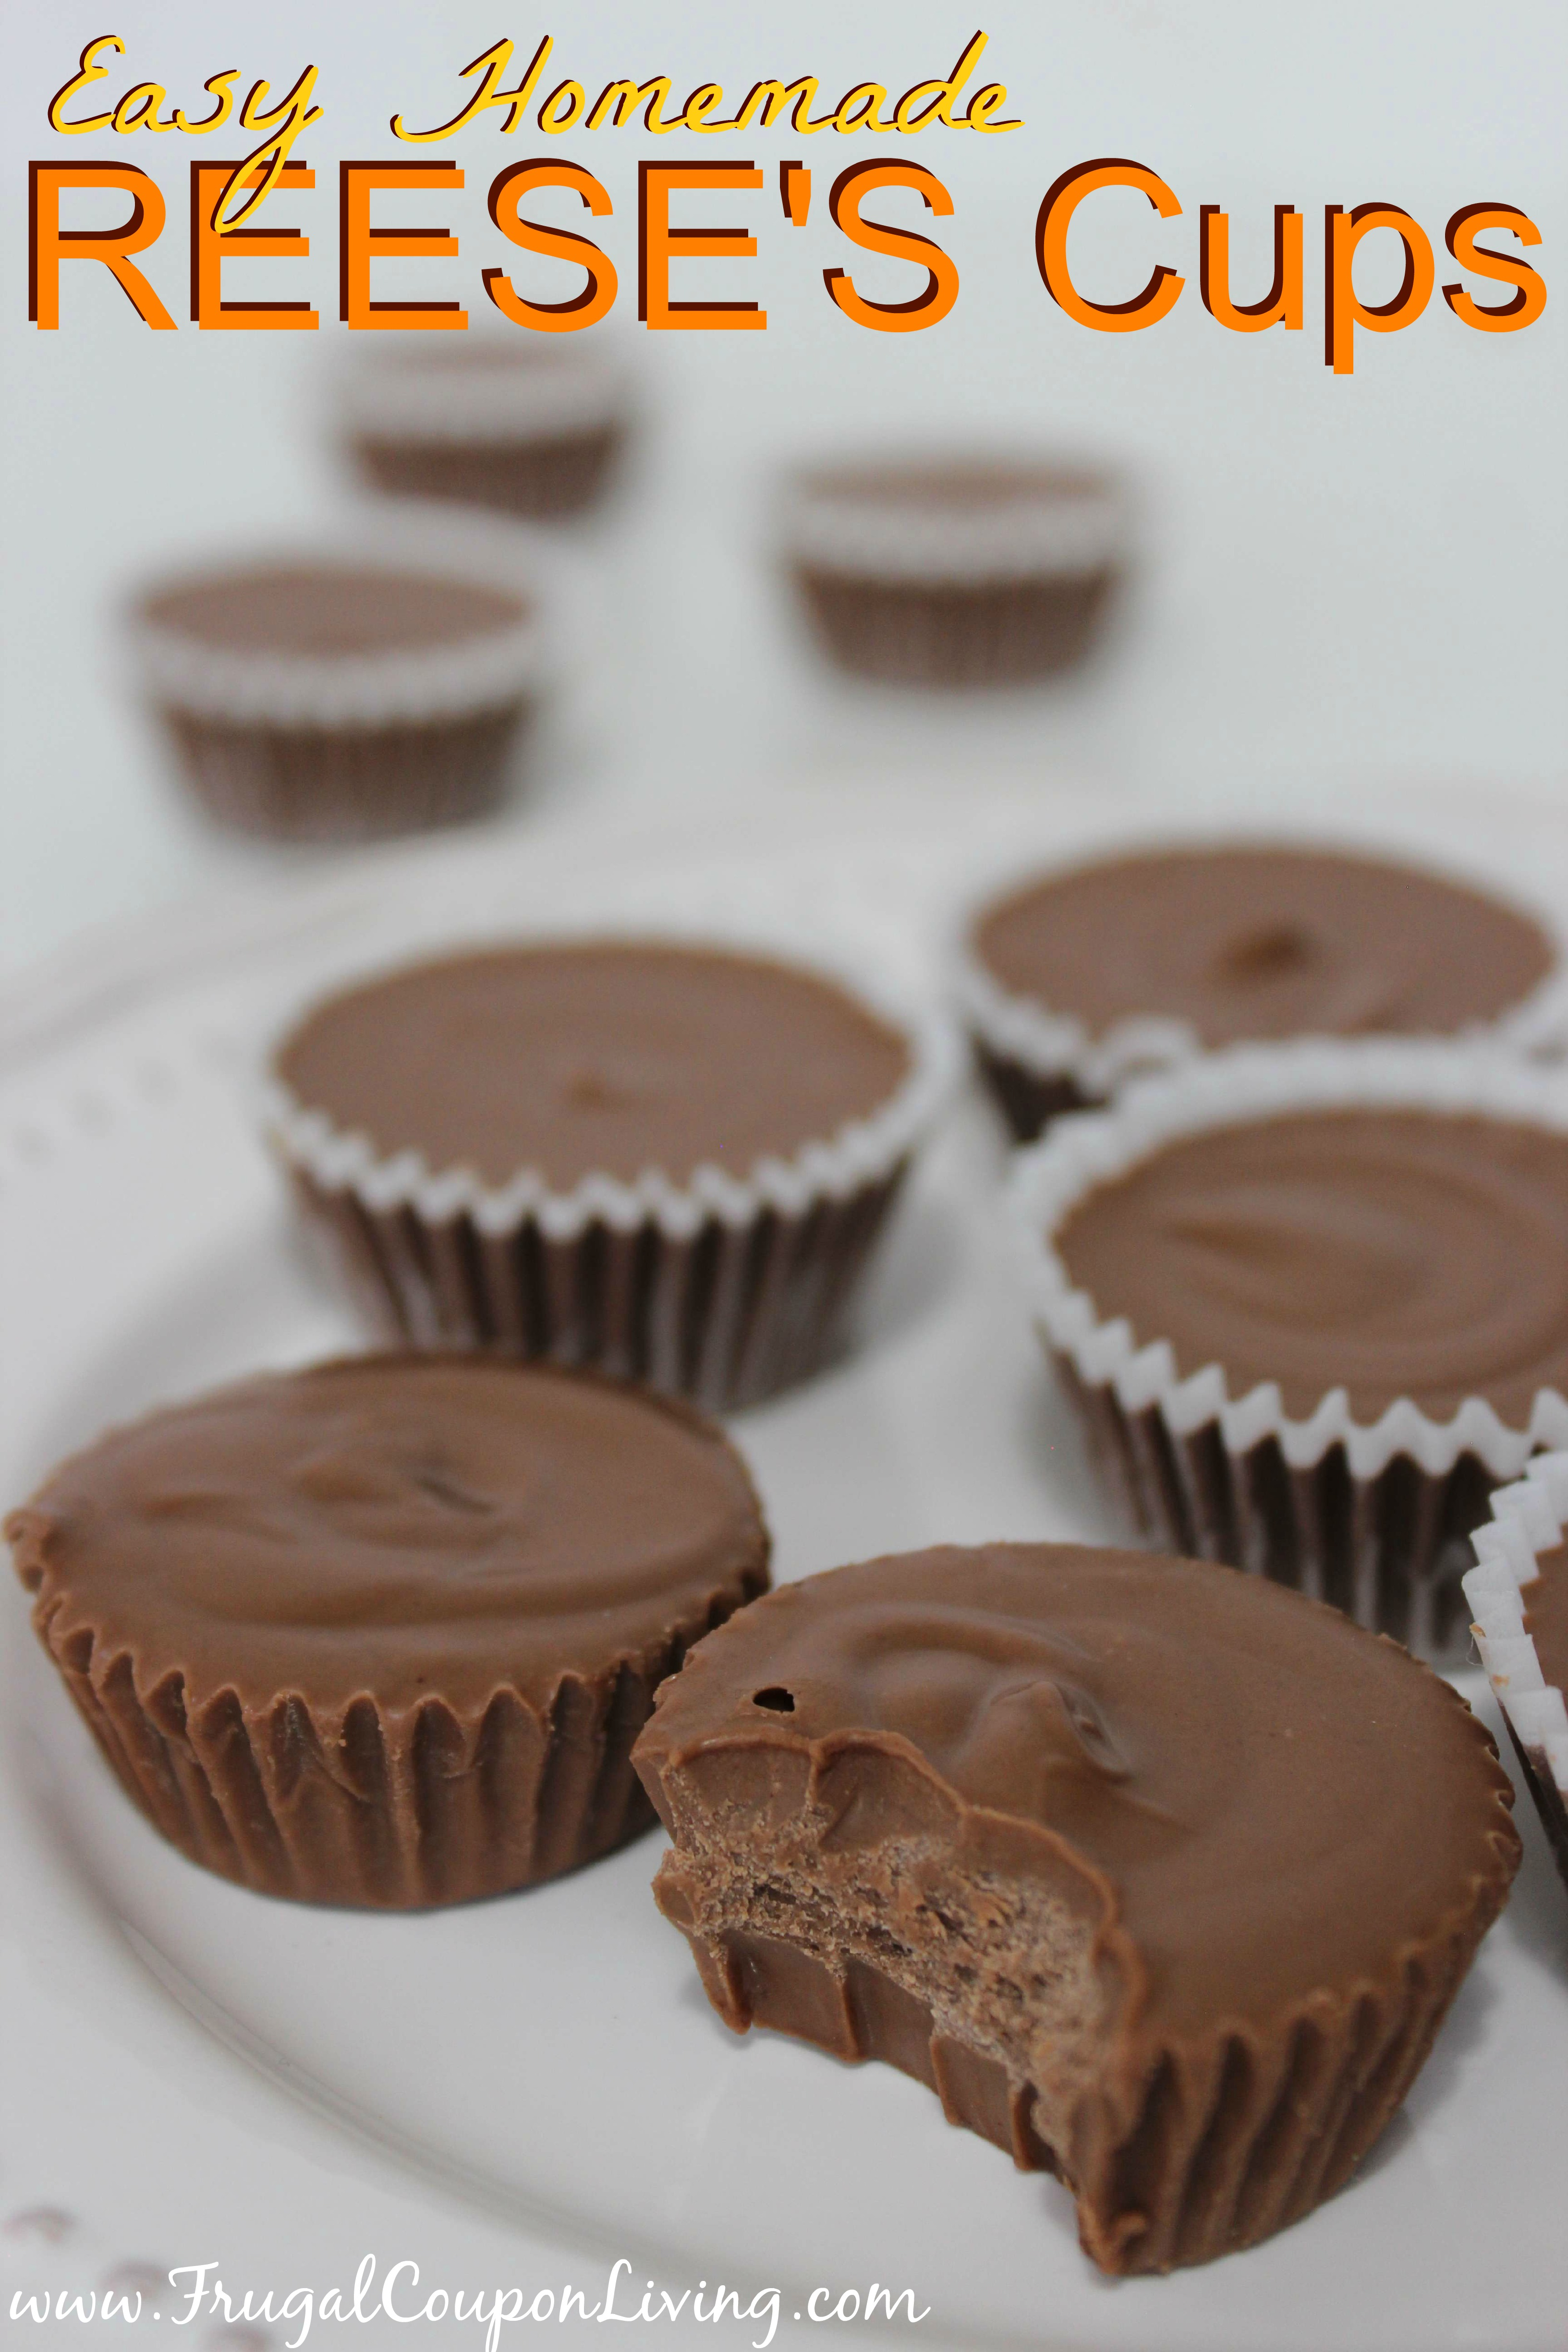 Easy Homemade REESE'S Cups – Chocolate Peanut Butter Meltaways